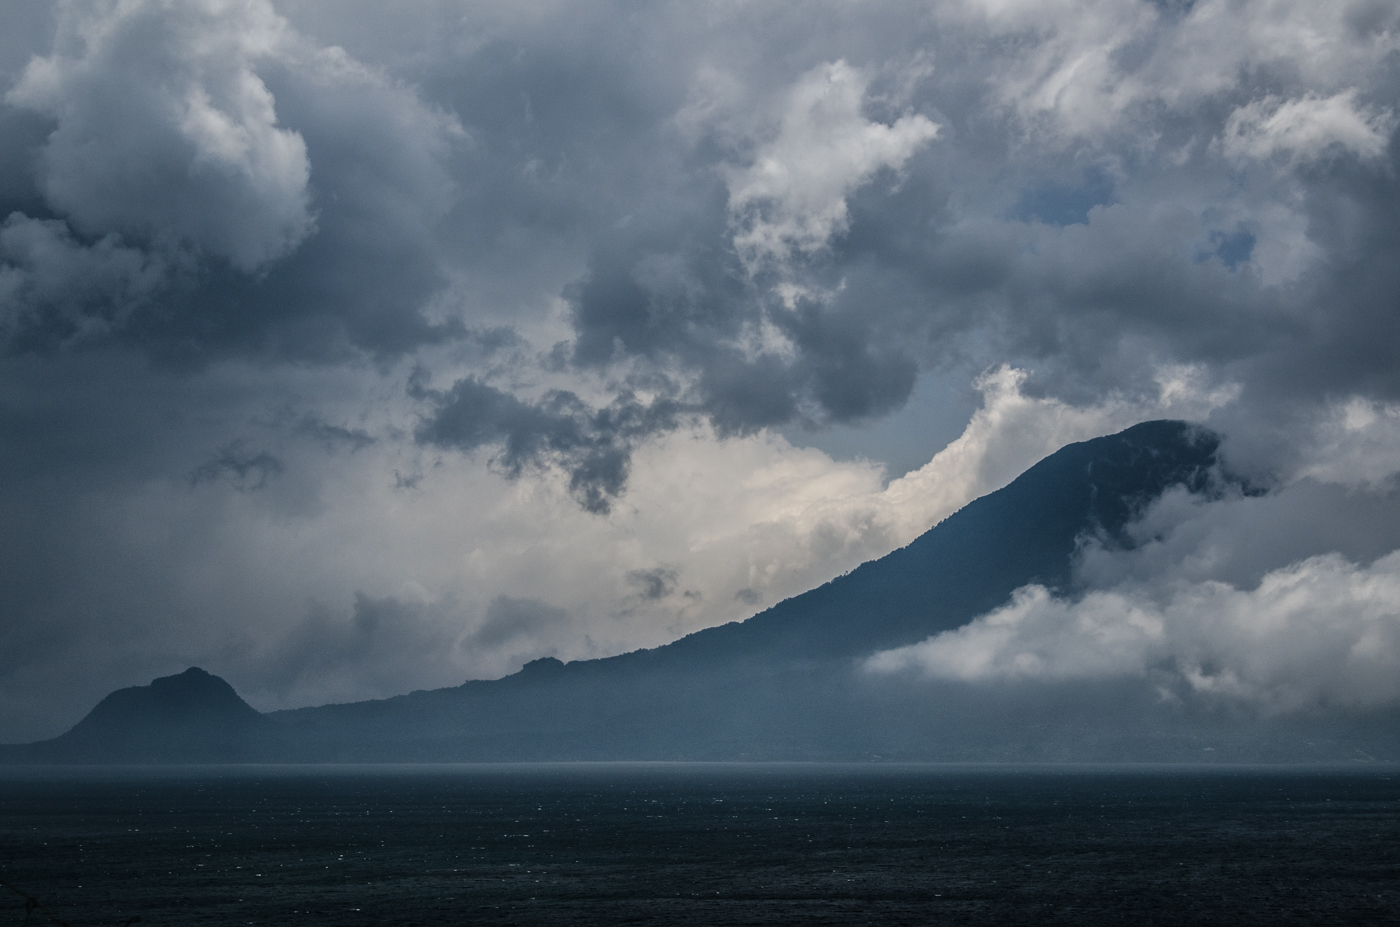 Clouds shroud Volcan Tolimán as a late afternoon storm forms over the lake.